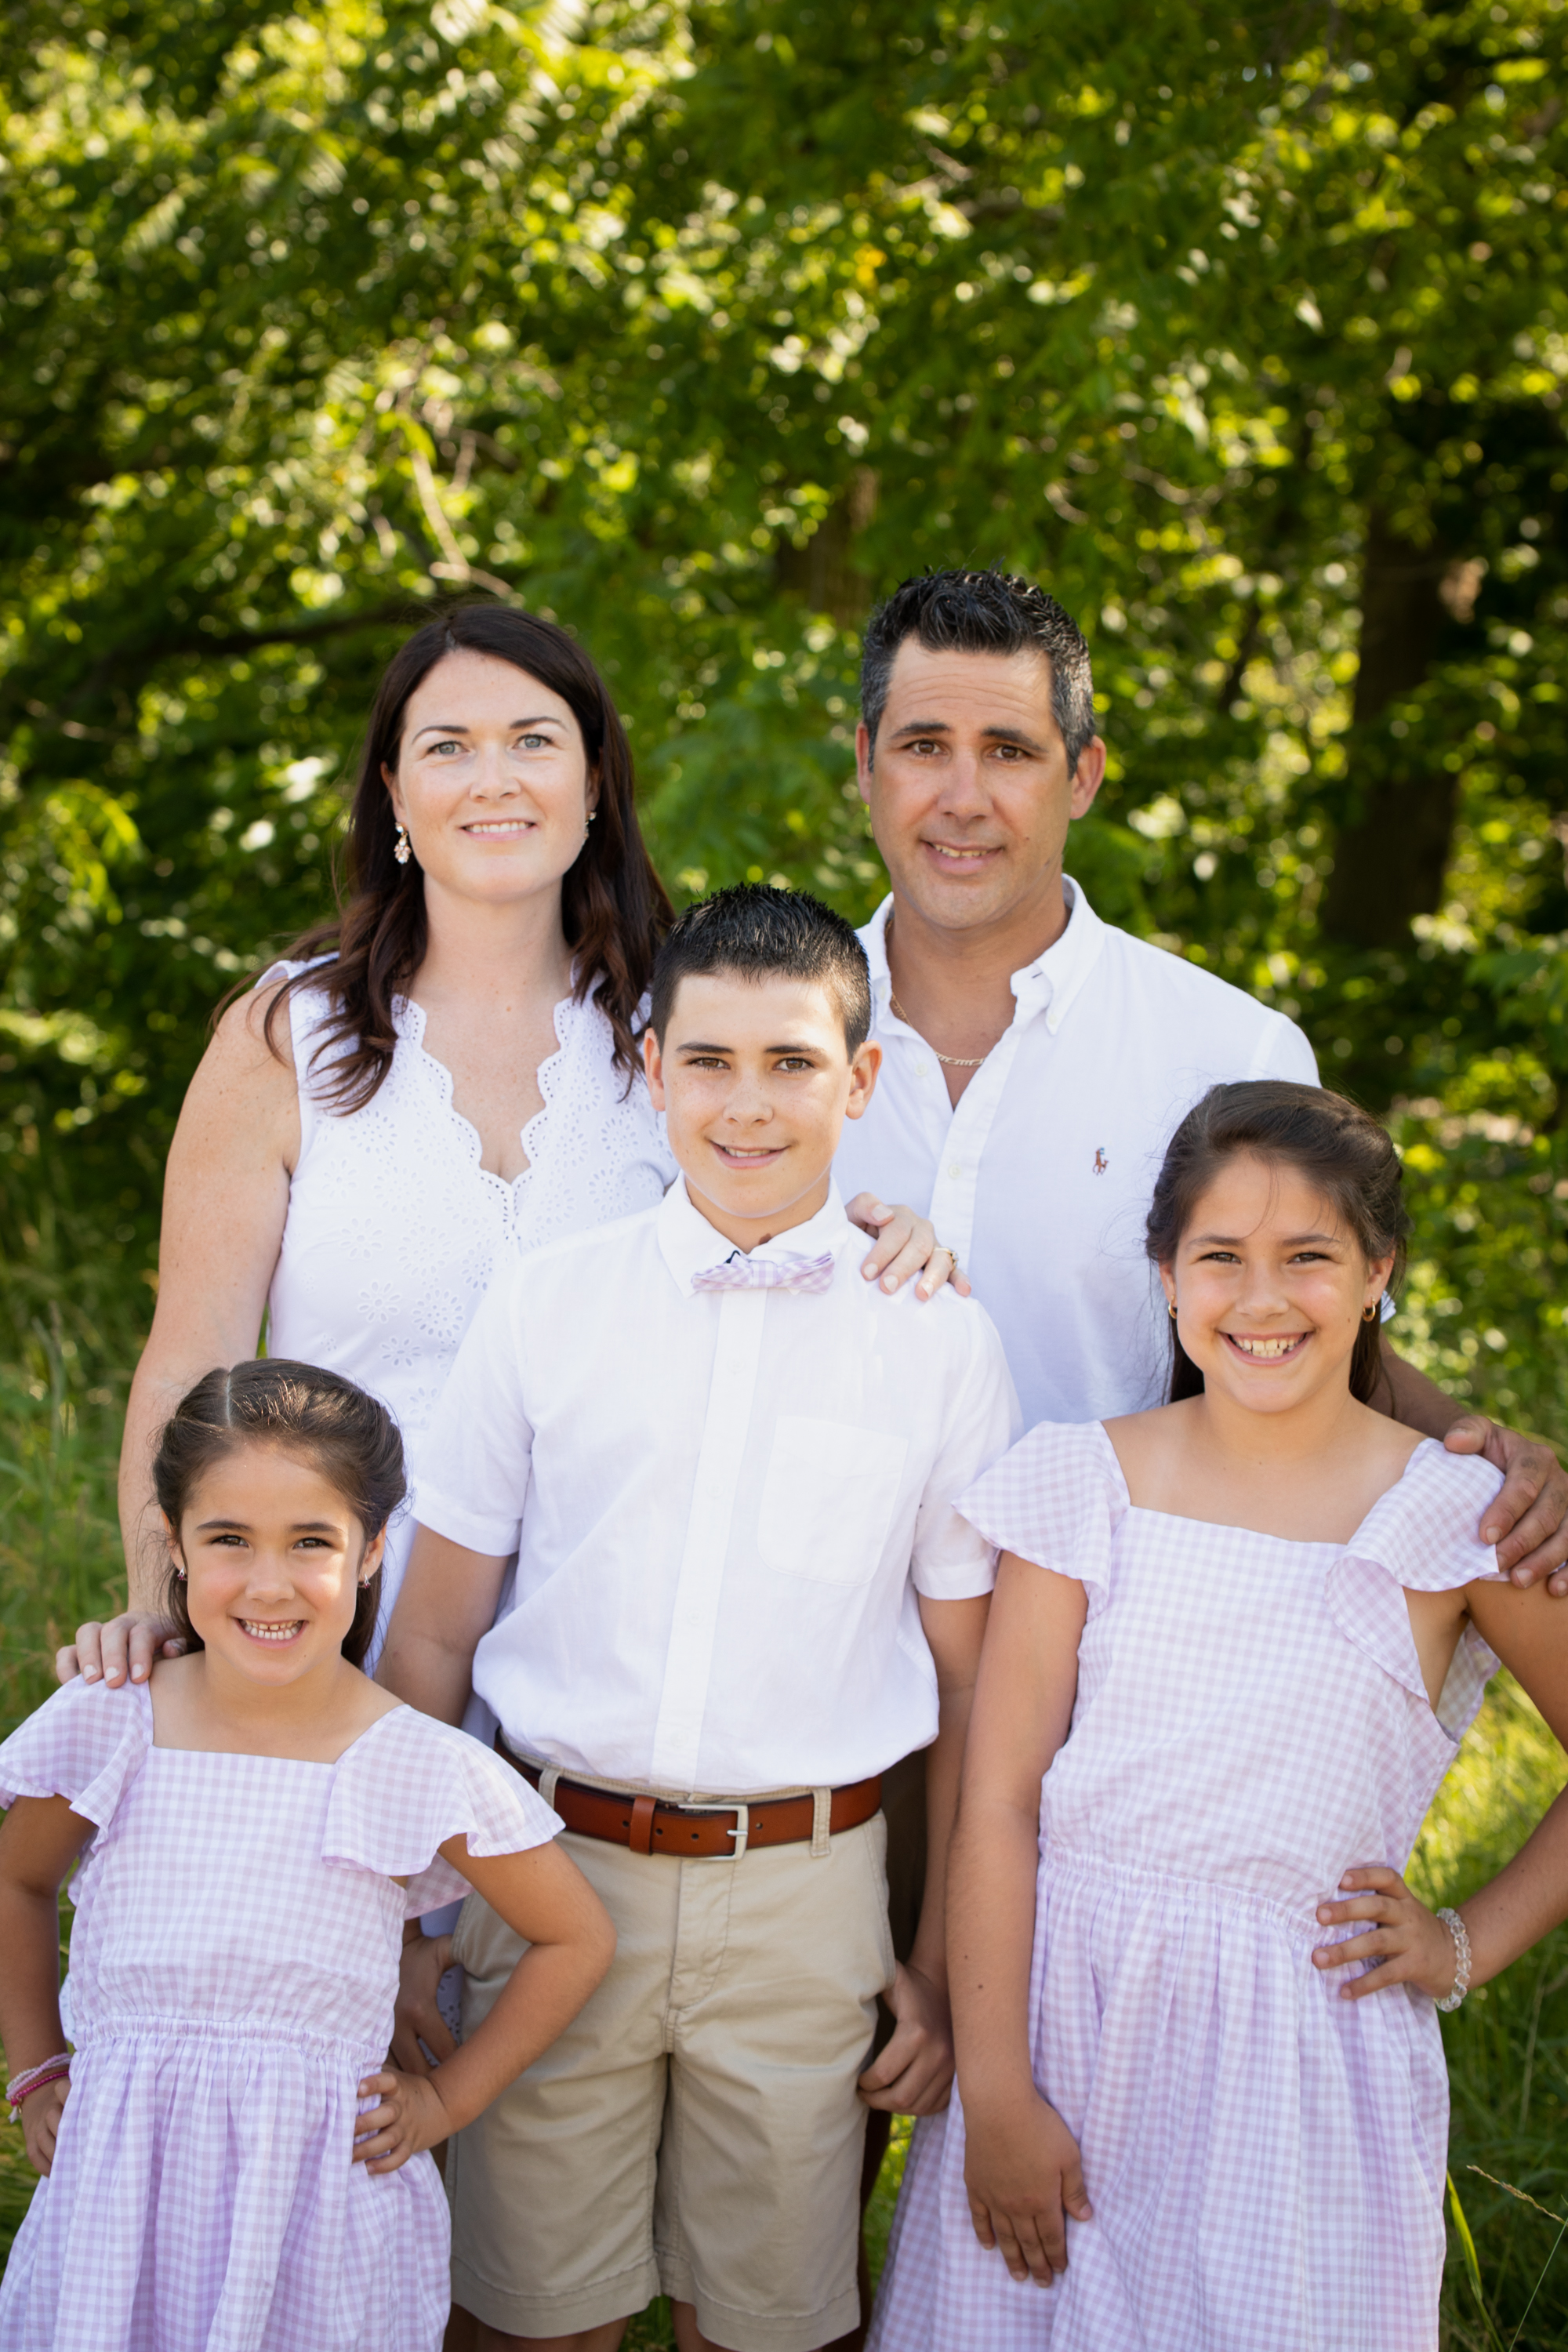 Family-group-Jodie-Aldred-Photography-Elgin-Huron-Middlesex-Family-Kids-London-Ontario-Photographer.jpg